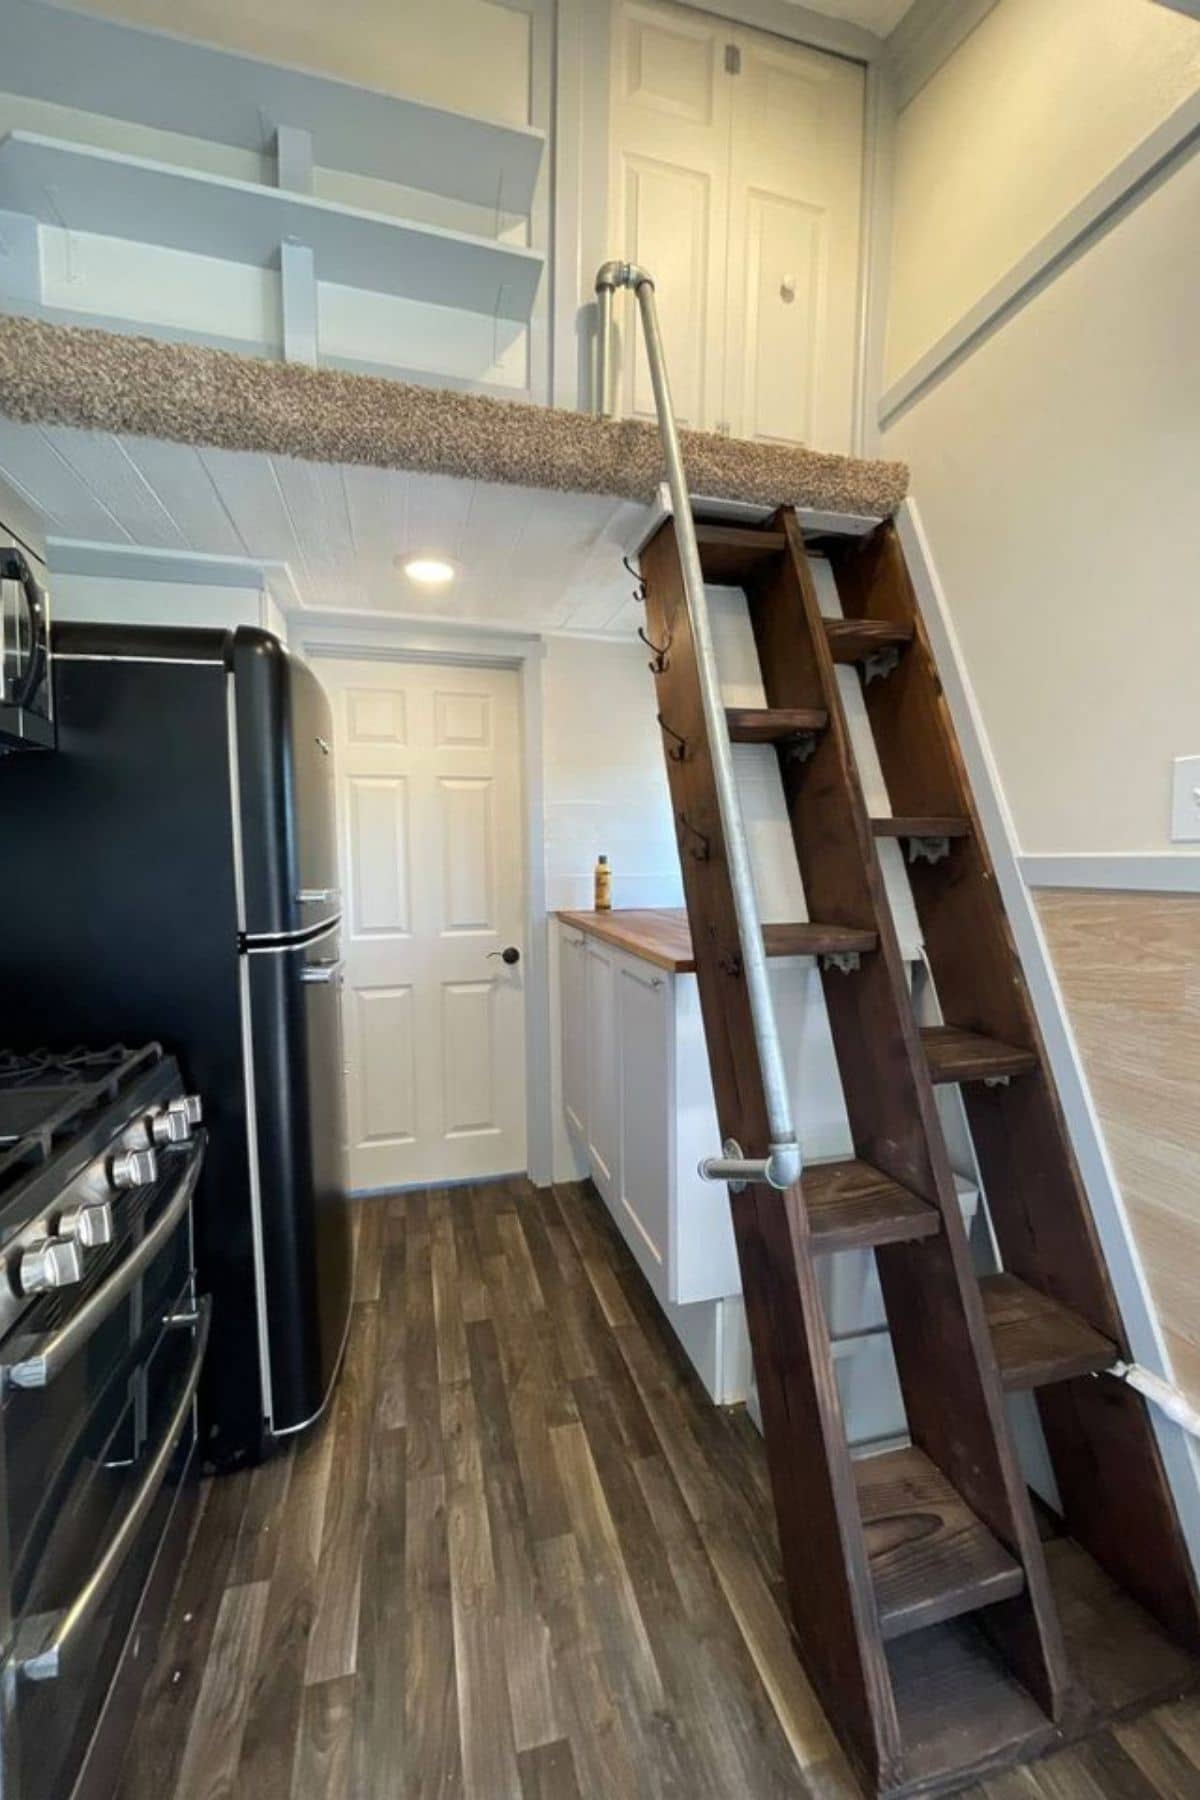 Wooden stairs up to carpeted loft on right side of kitchen